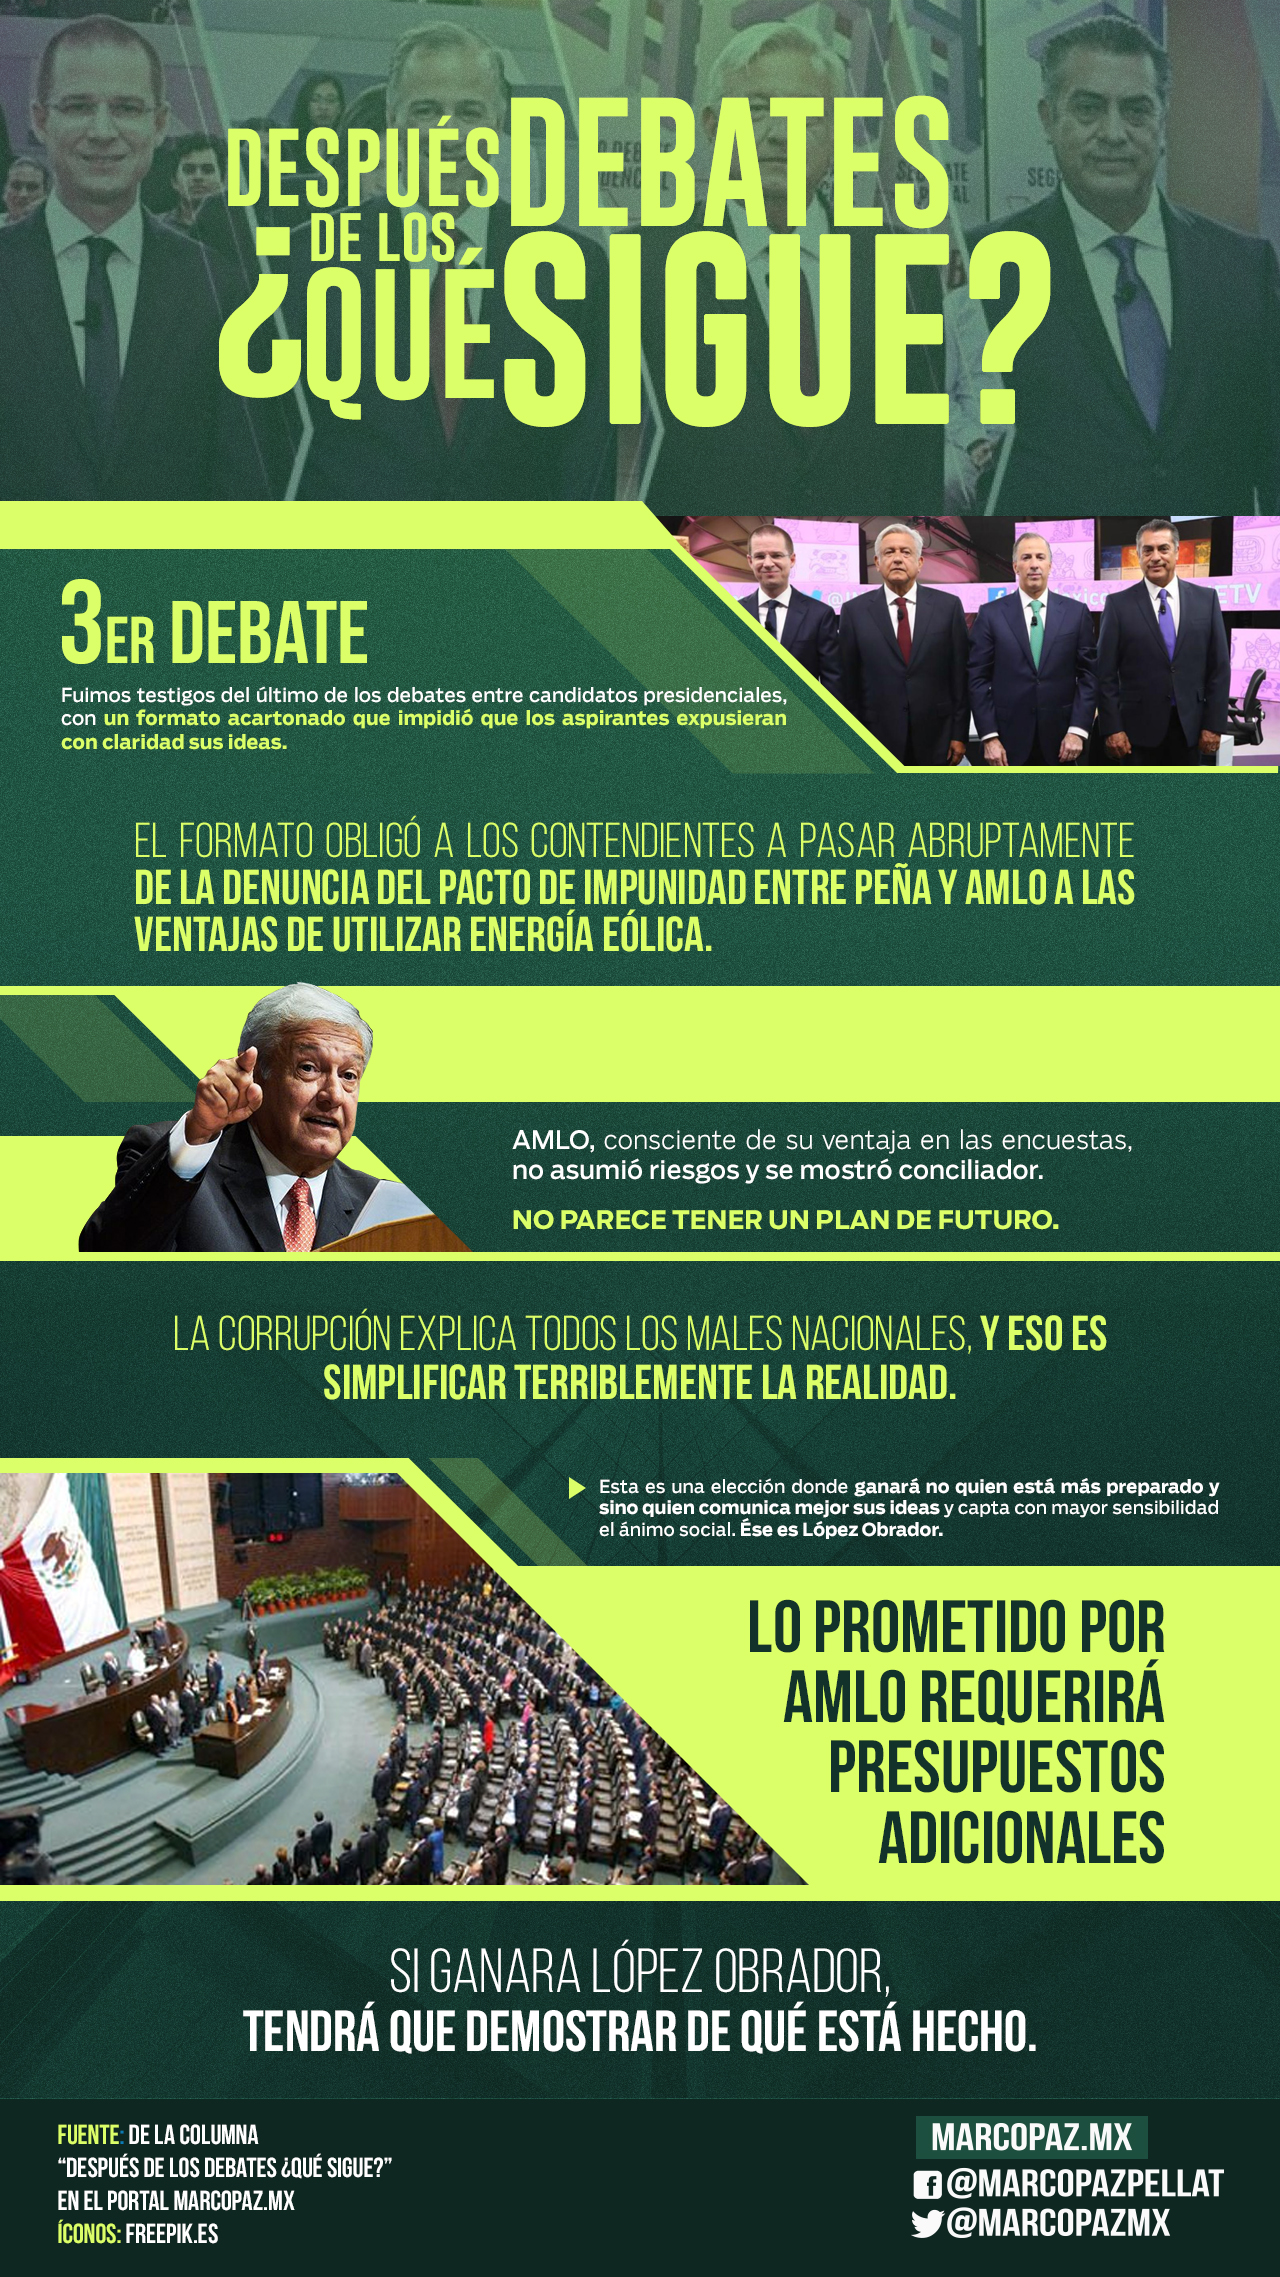 029_INFOGRAFIA_despues de los debates que sigue